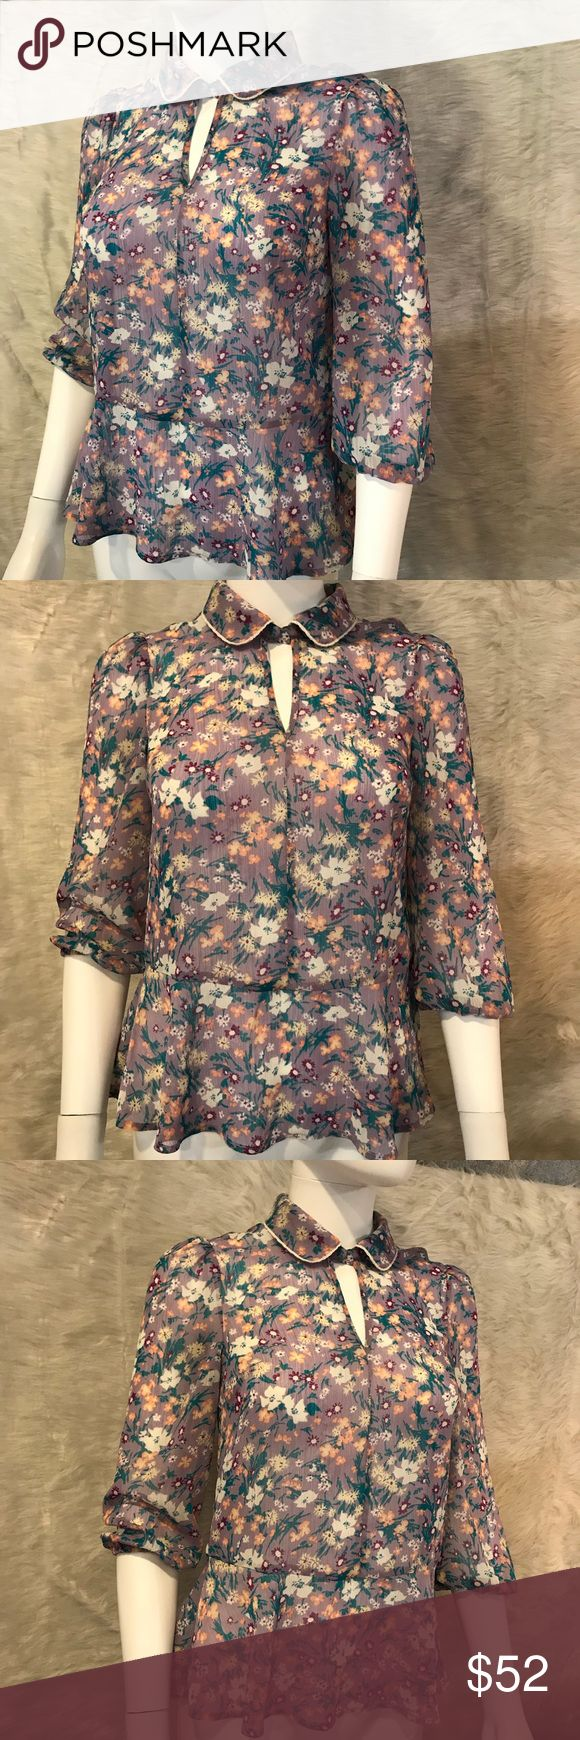 MODCLOTH floral lavender blouse top XXS ModCloth brand. Size XXS. The button looks loose as pictured, but feels secure when buttoned.  A few snags in material as pictured. Measurements in pictures. Modcloth Tops Blouses